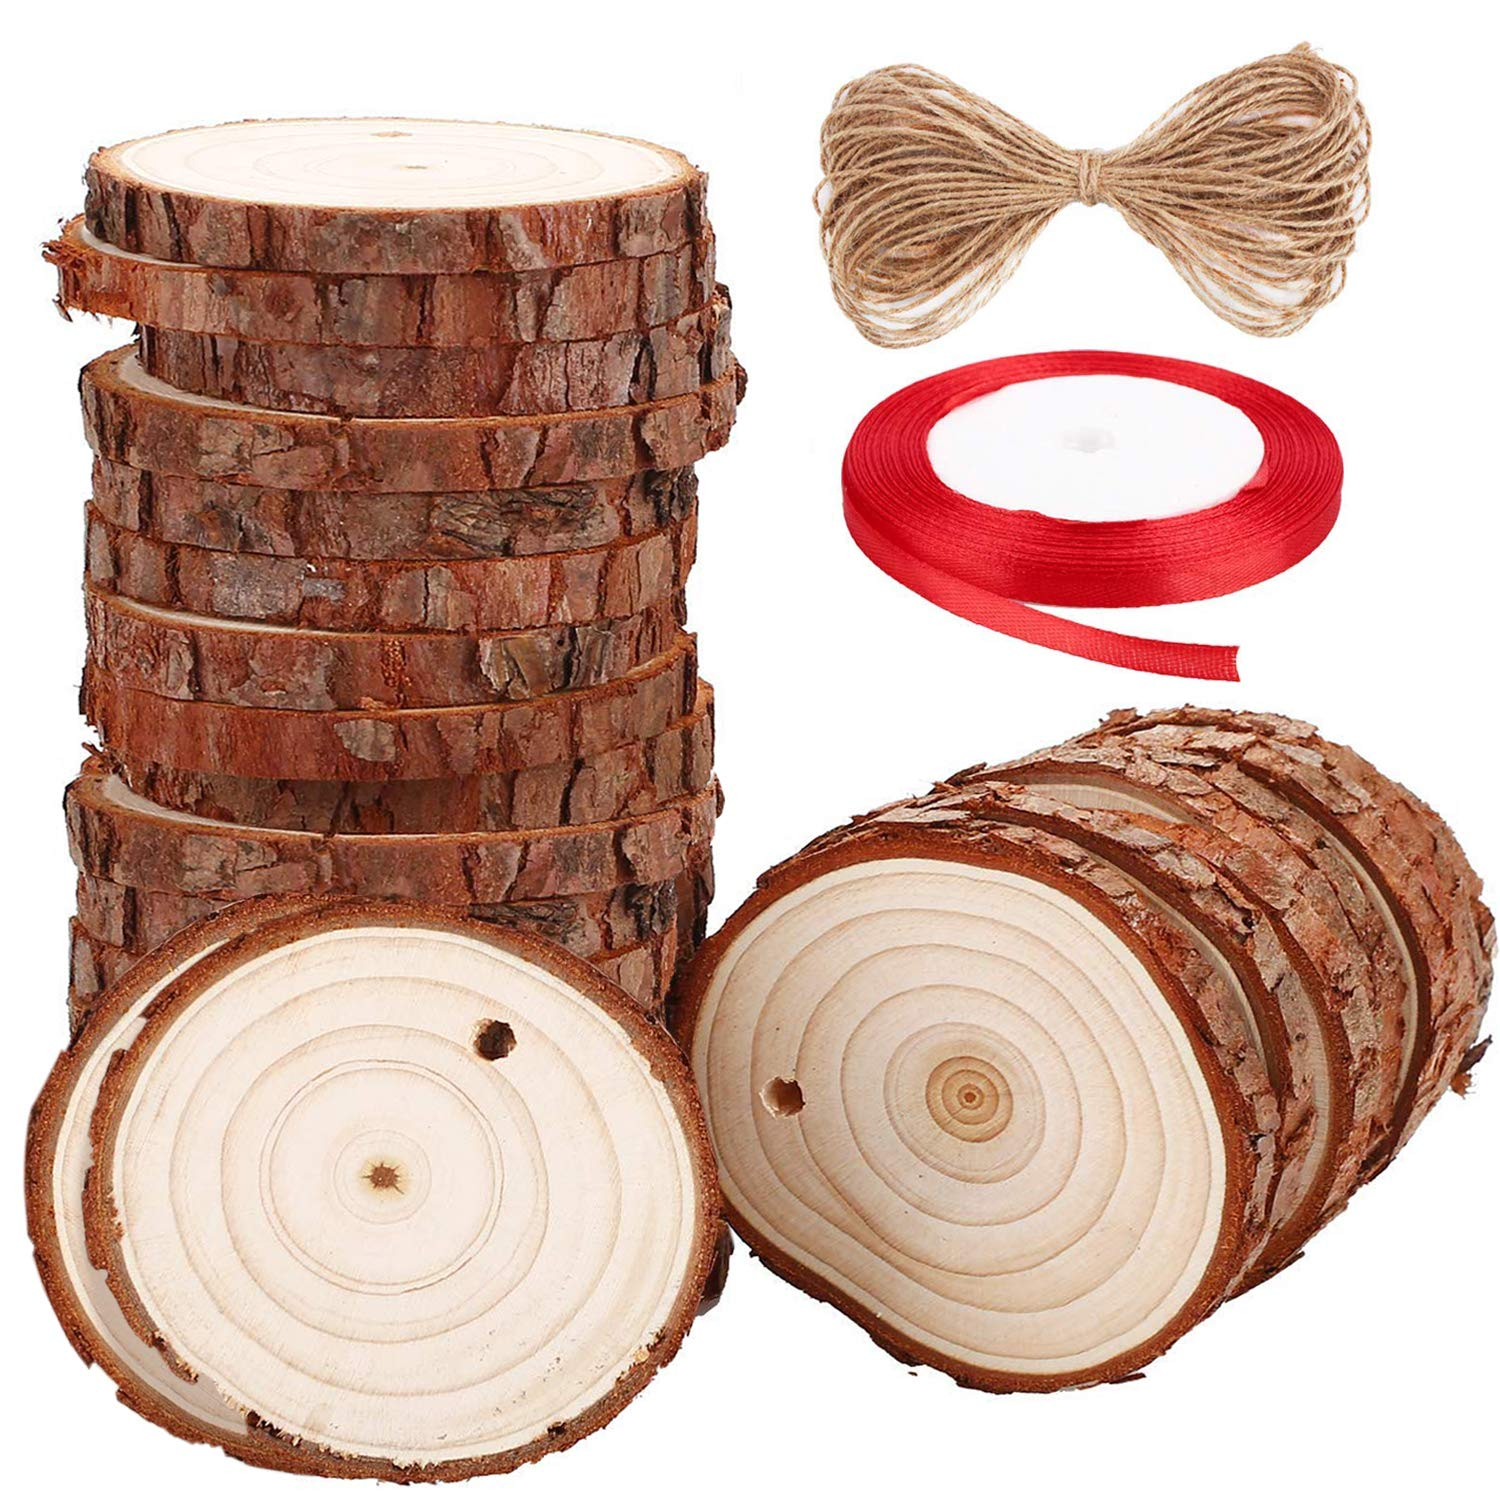 Wood Slices SOLEDI 20 PCS 3.1'-3.5' Craft Wood kit Unfinished Predrilled with Hole Natural Wooden Circles, Wood Circles Great for DIY Handmade Wedding Crafts, Xmas Ornaments and Home Decoration